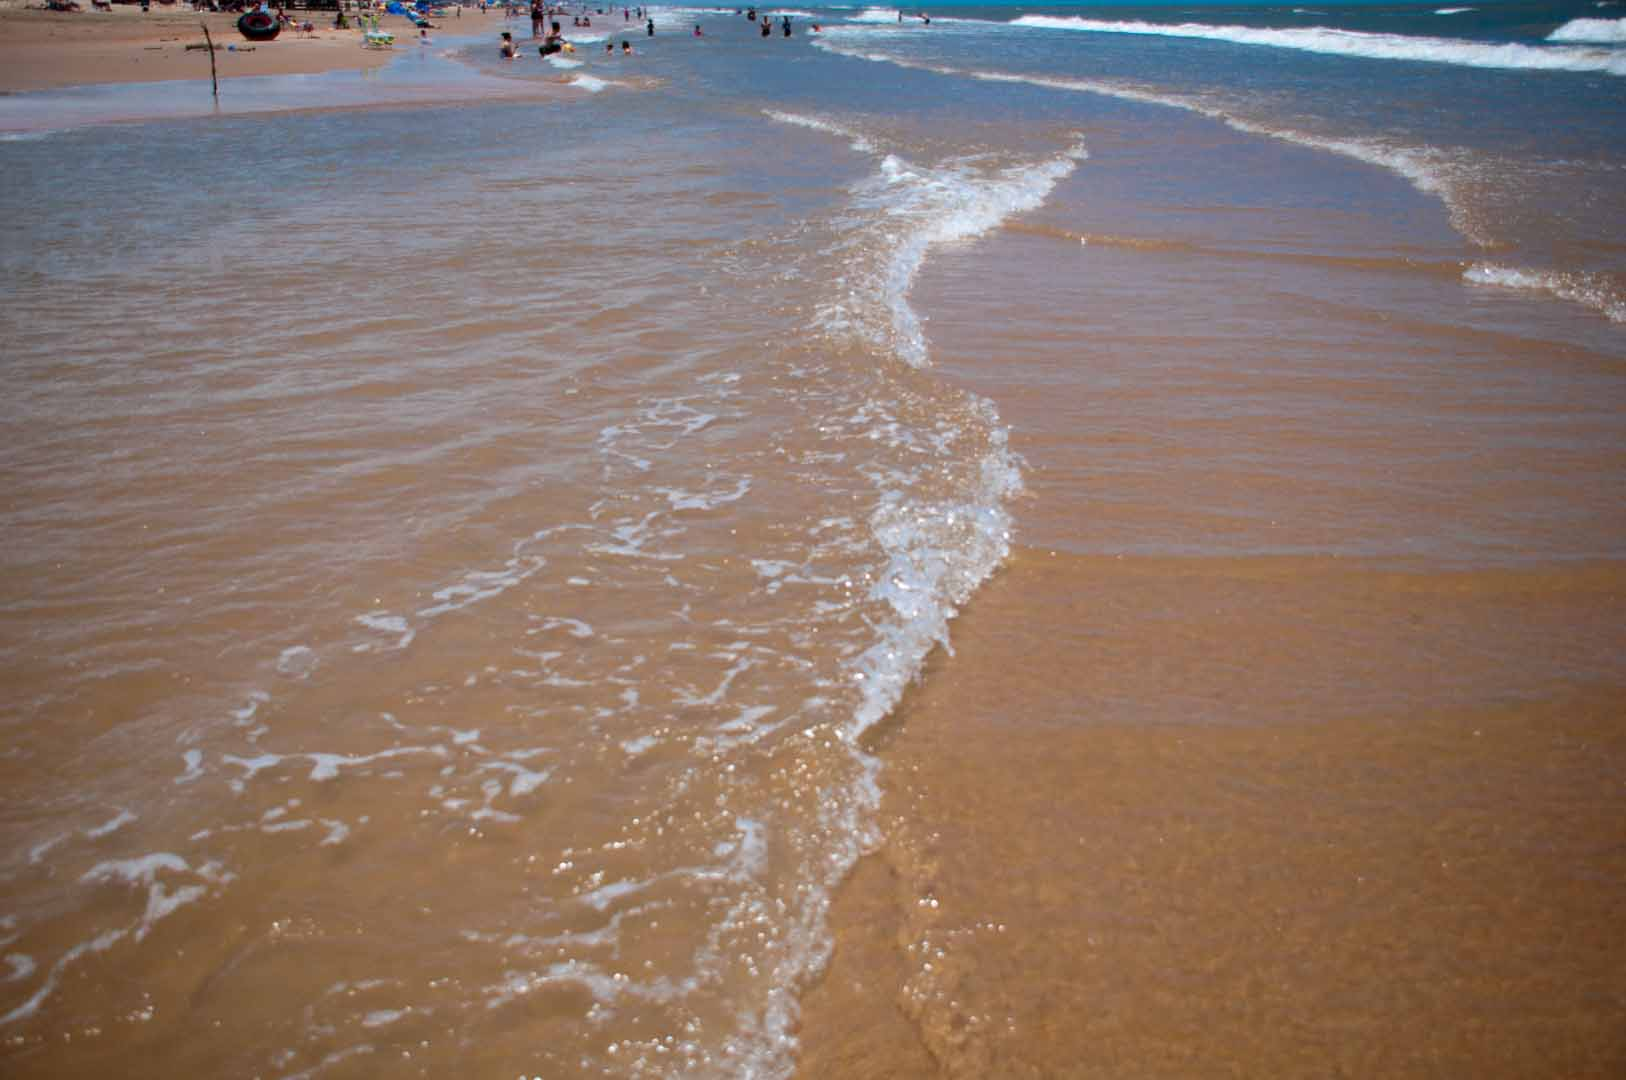 SurfsideLateJune_20150627_356